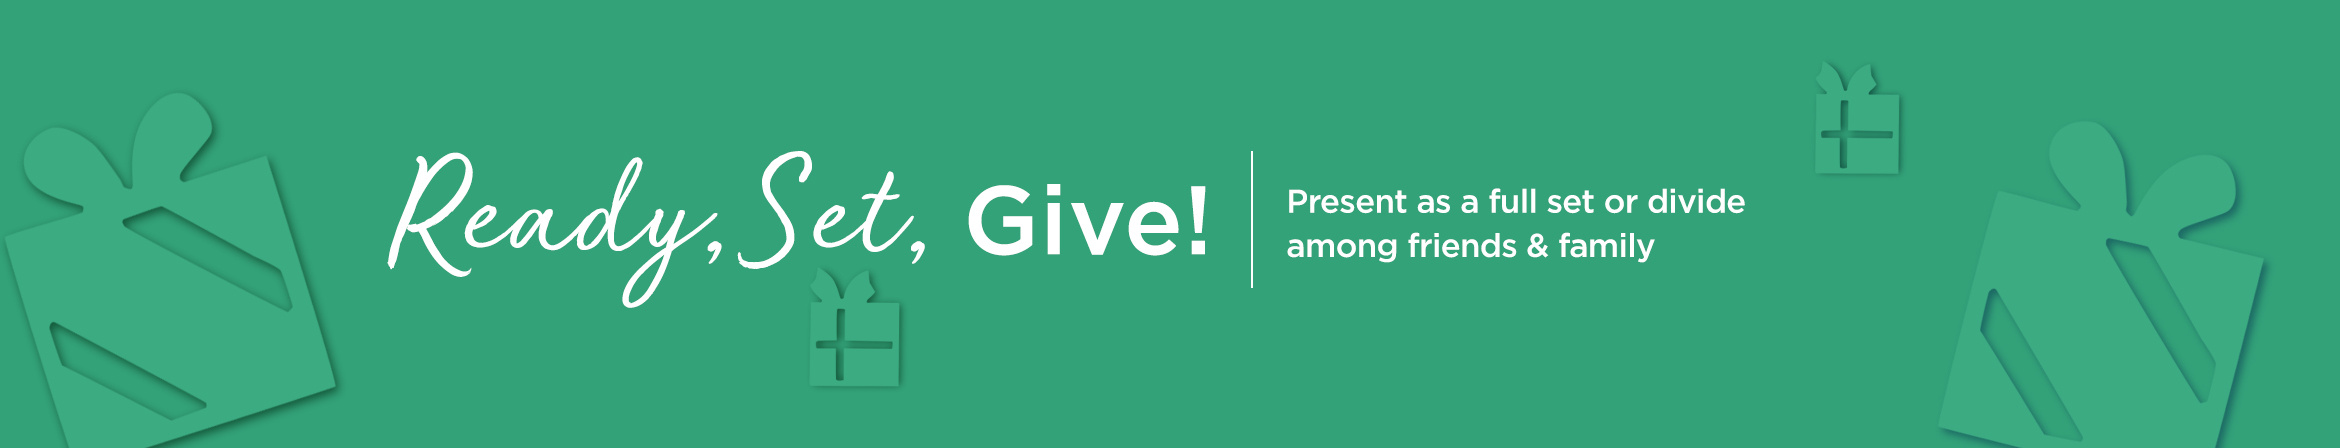 Ready, Set, Give! - Present as a full set or divide among friends & family